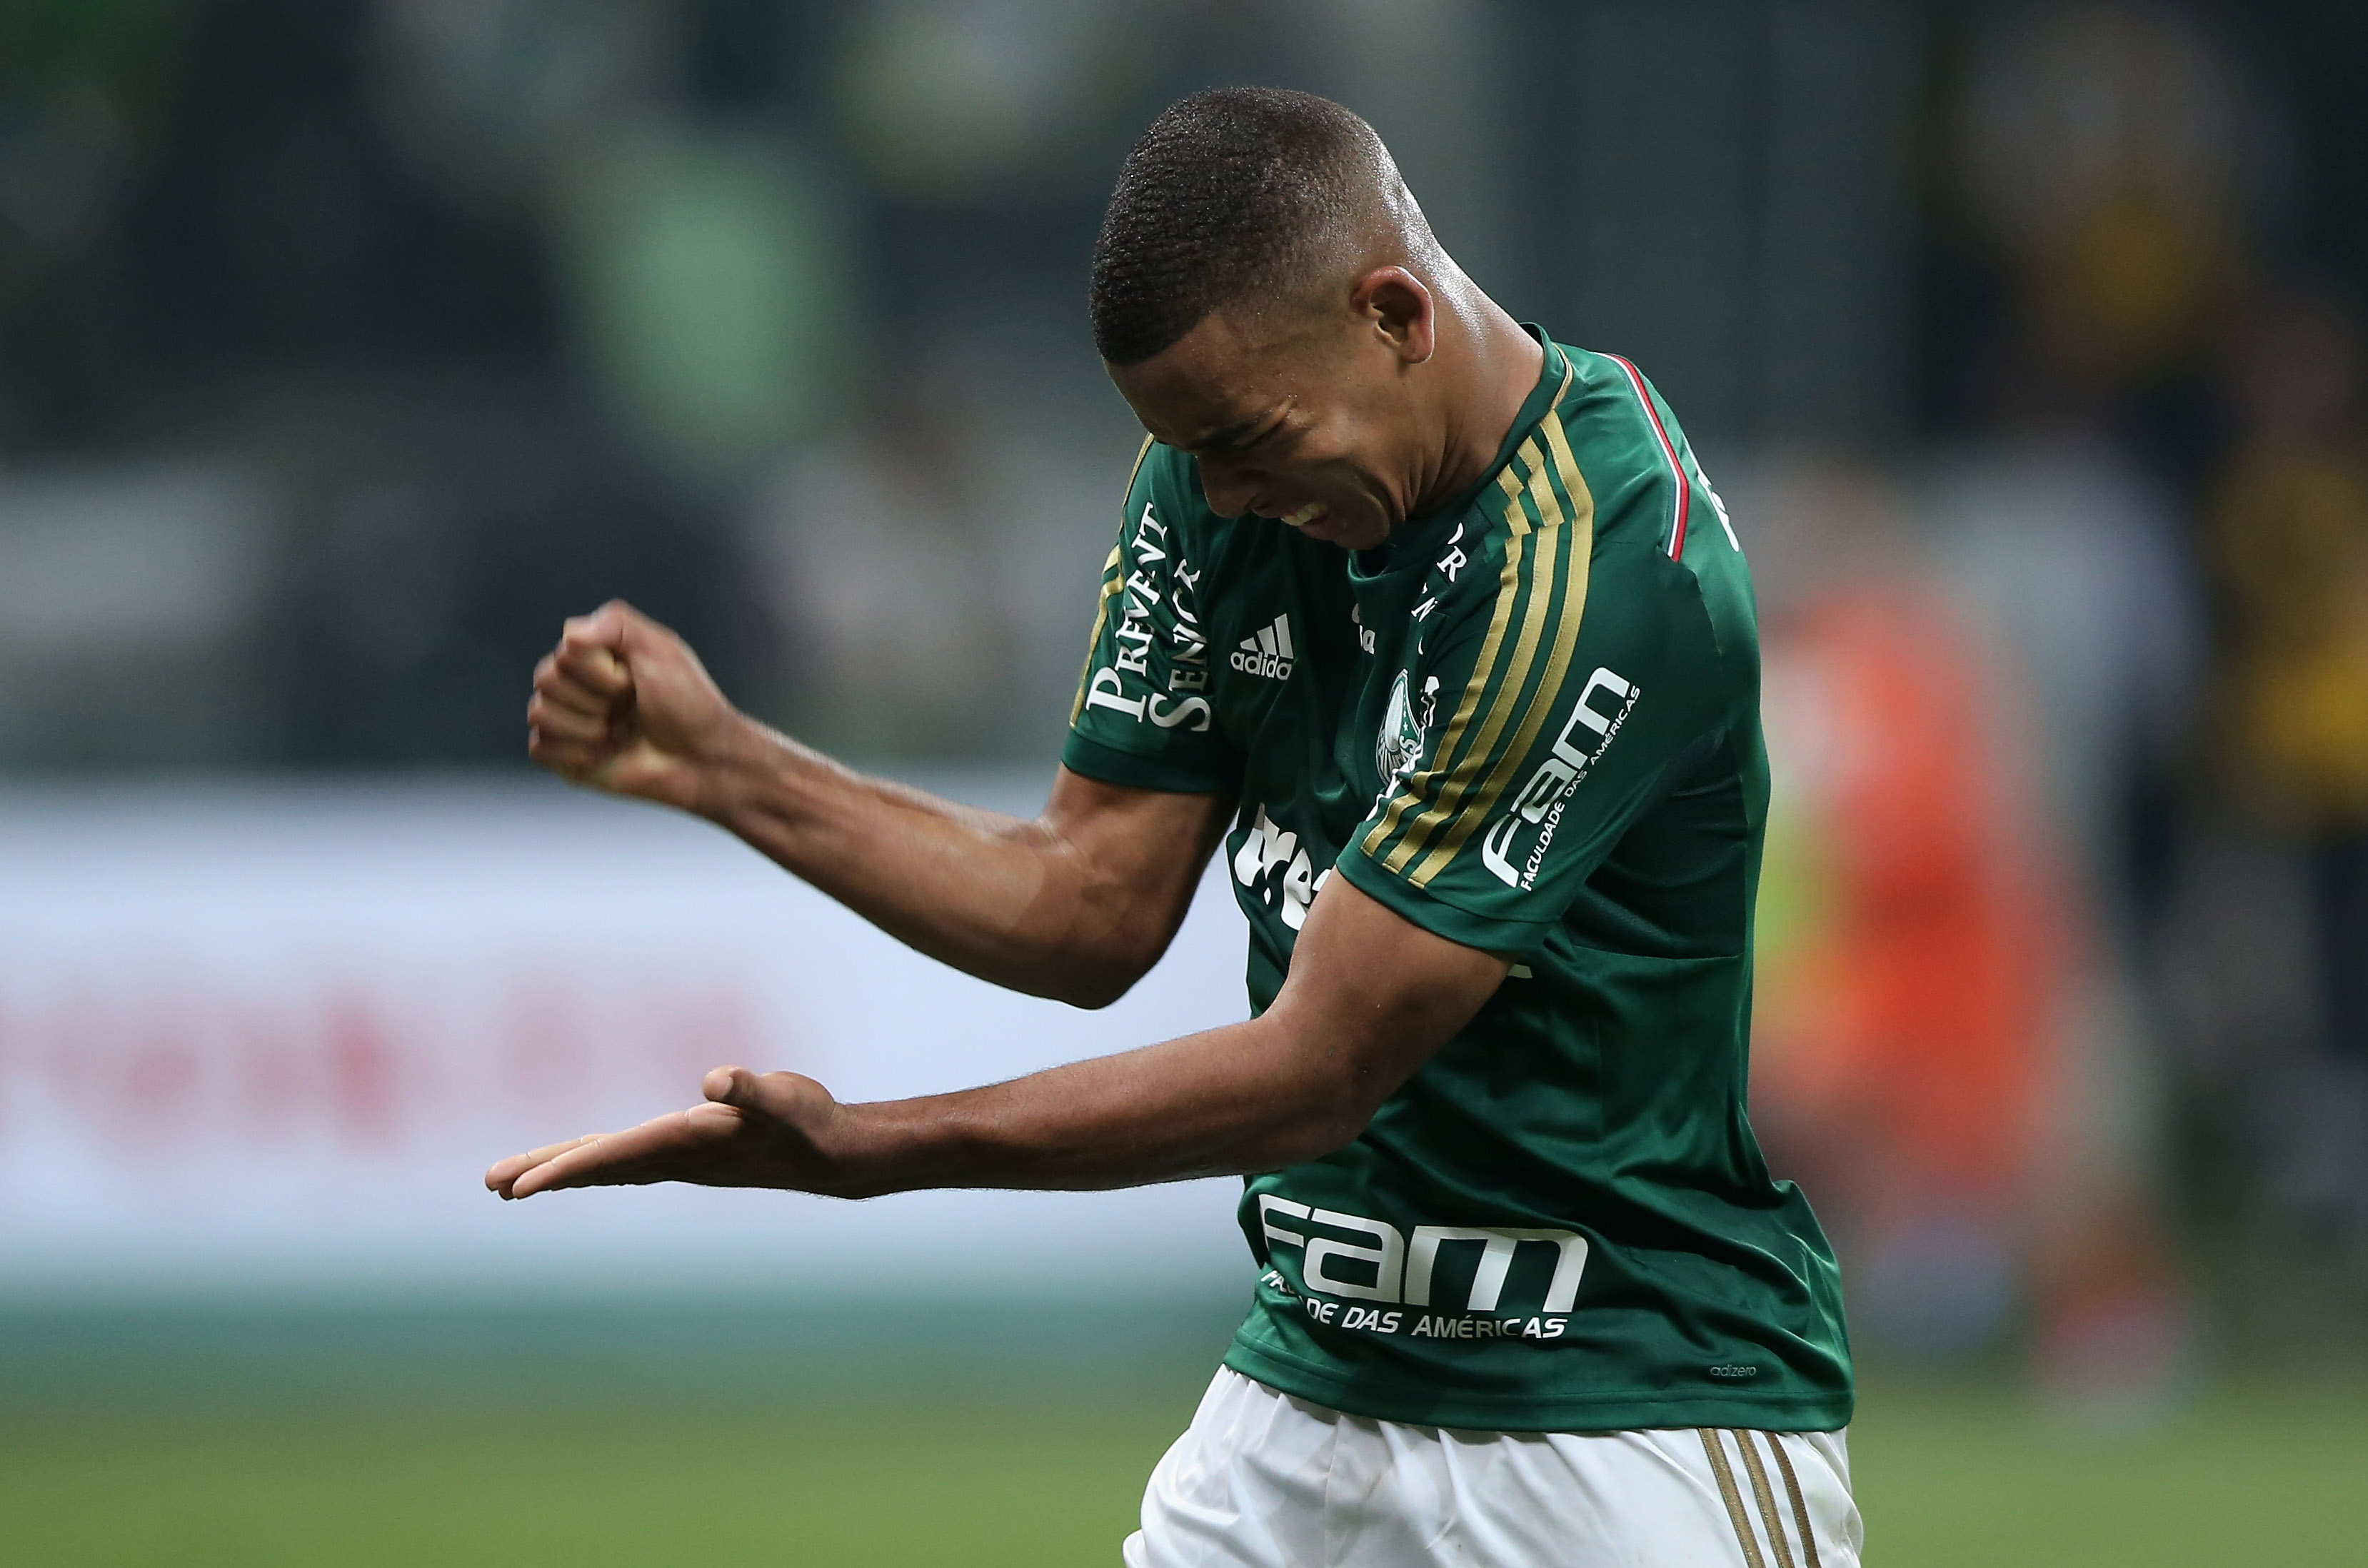 SAO PAULO, BRAZIL - MAY 09: Gabriel Jesus of Palmeiras reacts during the match between Palmeiras and Atletico MG for the Brazilian Series A 2015 at Allianz Parque on May 9, 2015 in Sao Paulo, Brazil. (Photo by Friedemann Vogel/Getty Images)